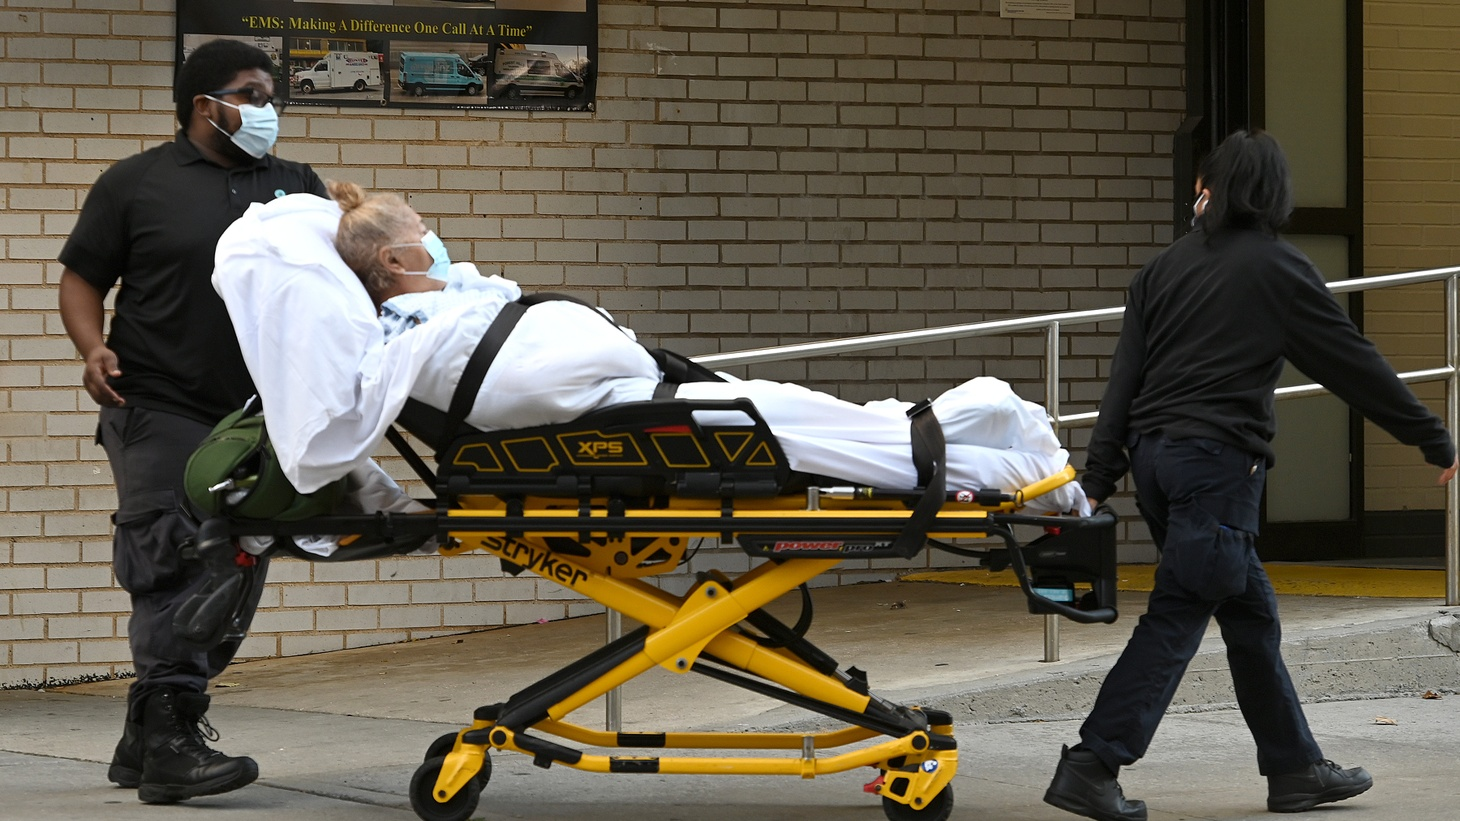 A woman lying on a stretcher is wheeled out of Long Island Jewish Forest Hills Northwell Health Hospital in the Queens borough of New York City, NY, November 10, 2020. The United States is experiencing a surge in COVID-19 cases as it recently surpassed 10 million in the number of people infected with coronavirus.